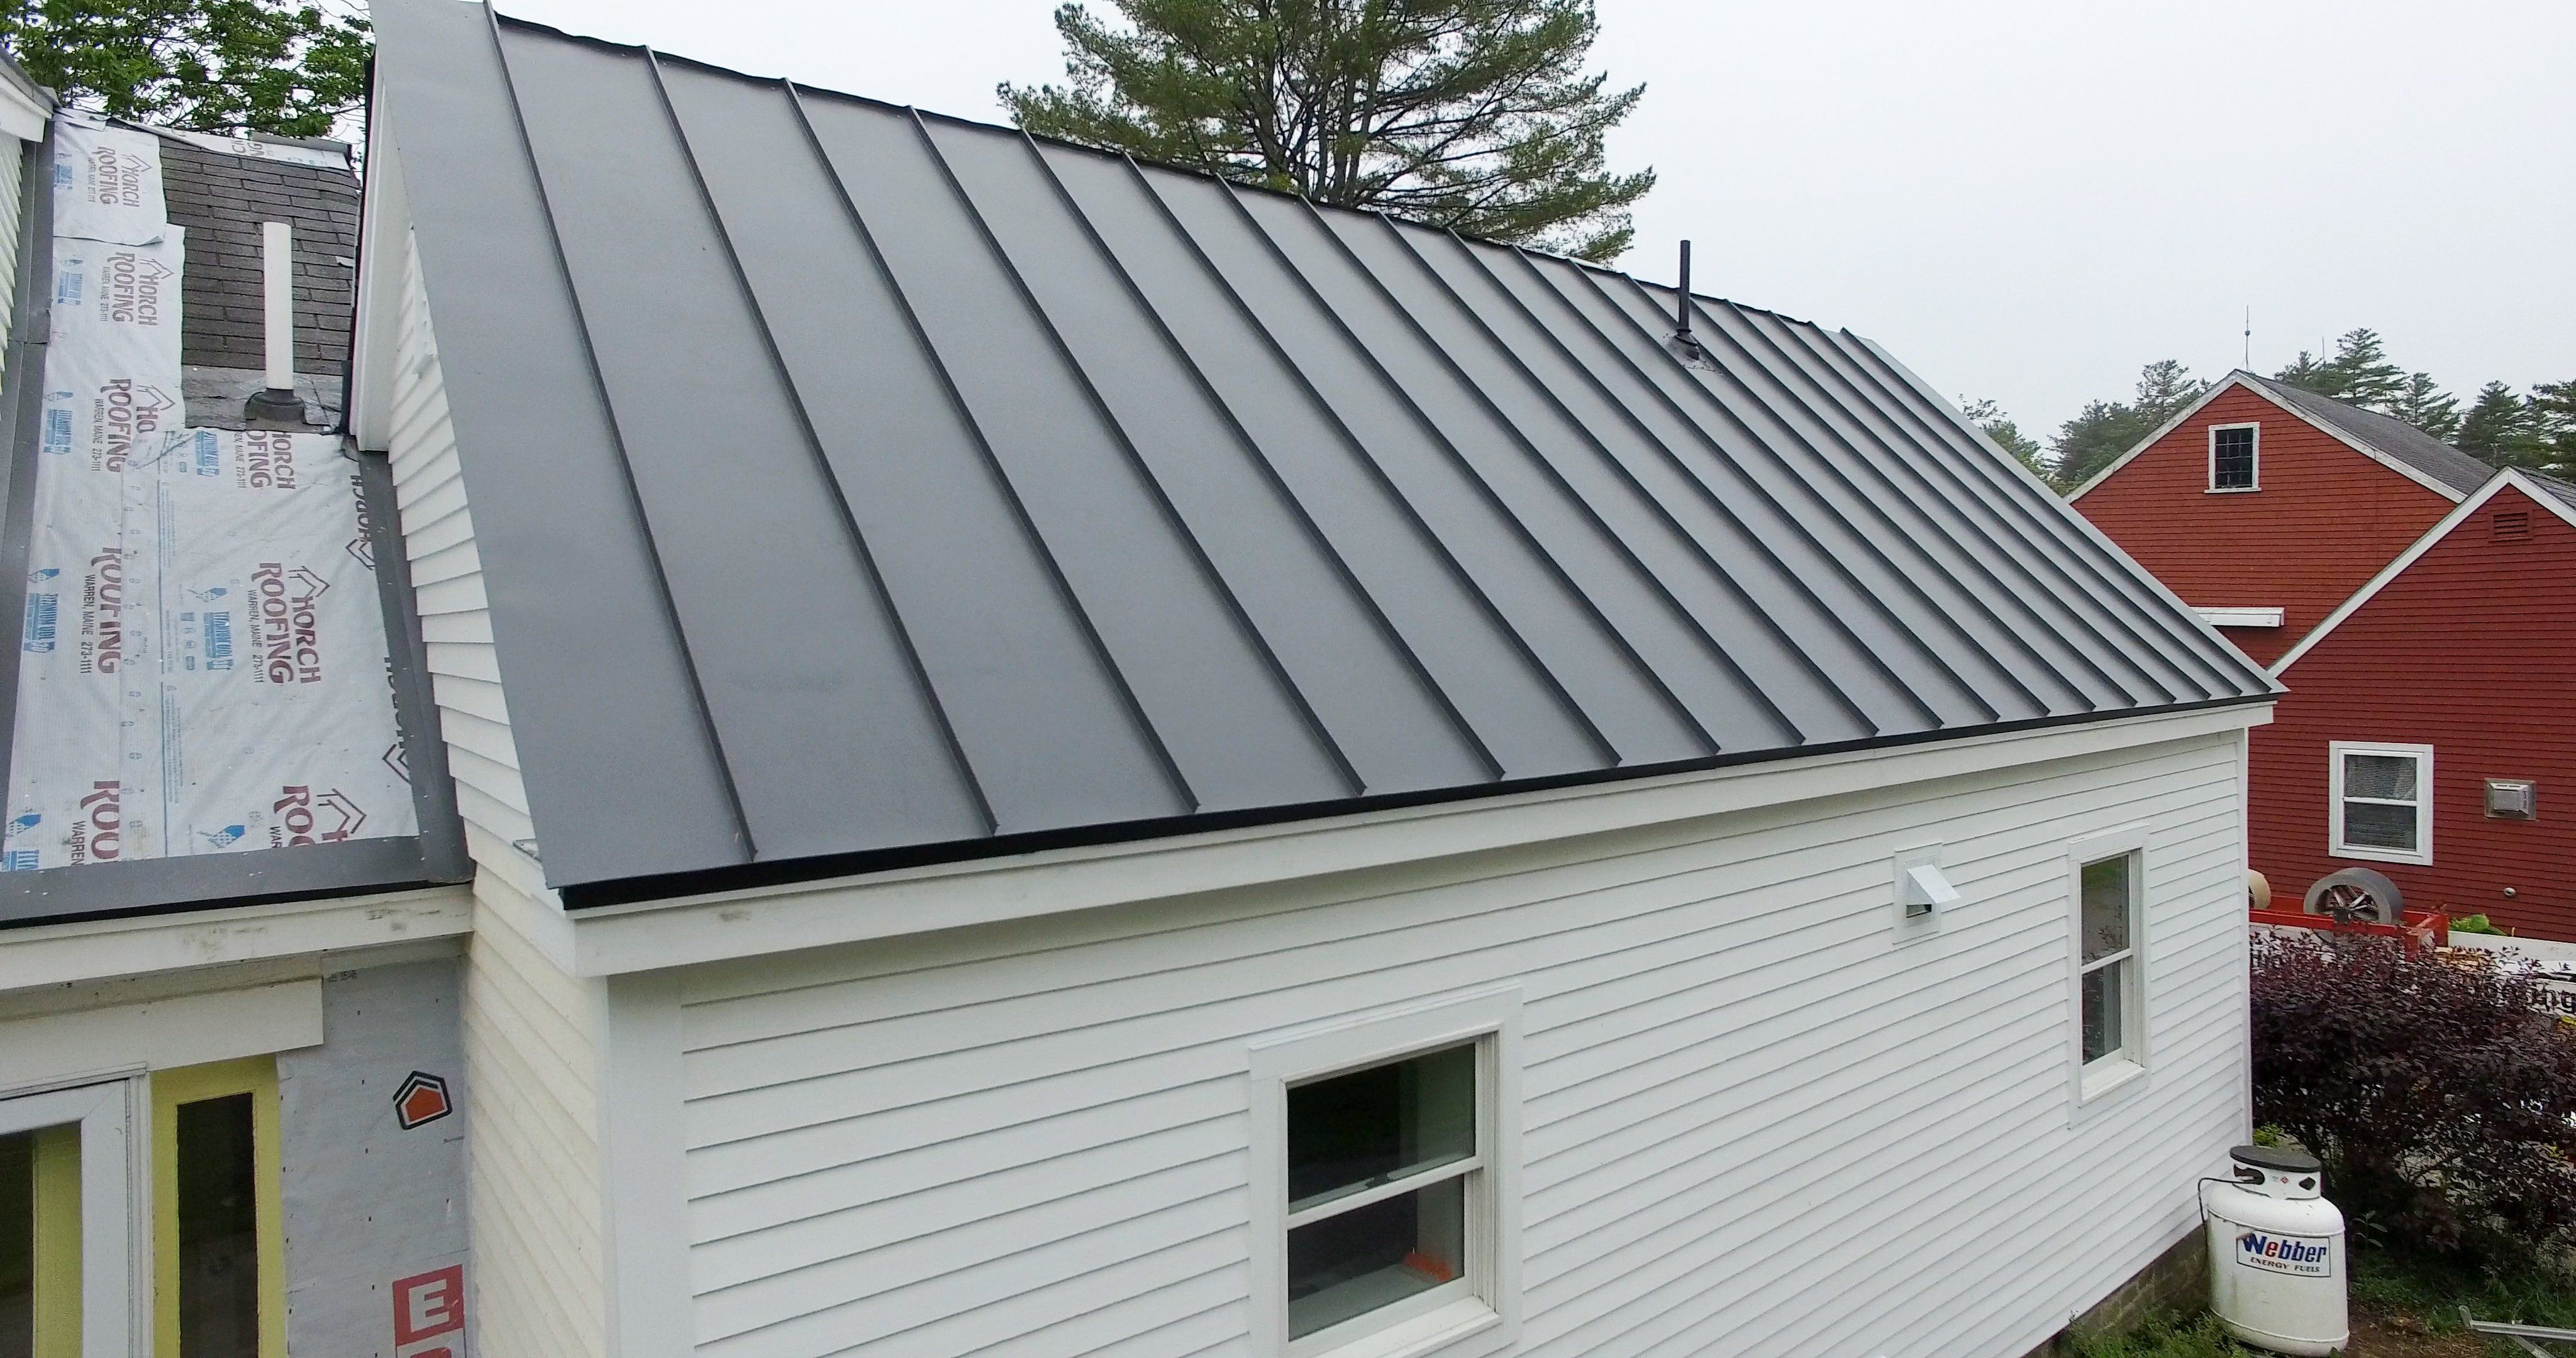 How To Install A Metal Roof Over Asphalt Shingles In 2020 Metal Roof Over Shingles Shingling Metal Roof Installation